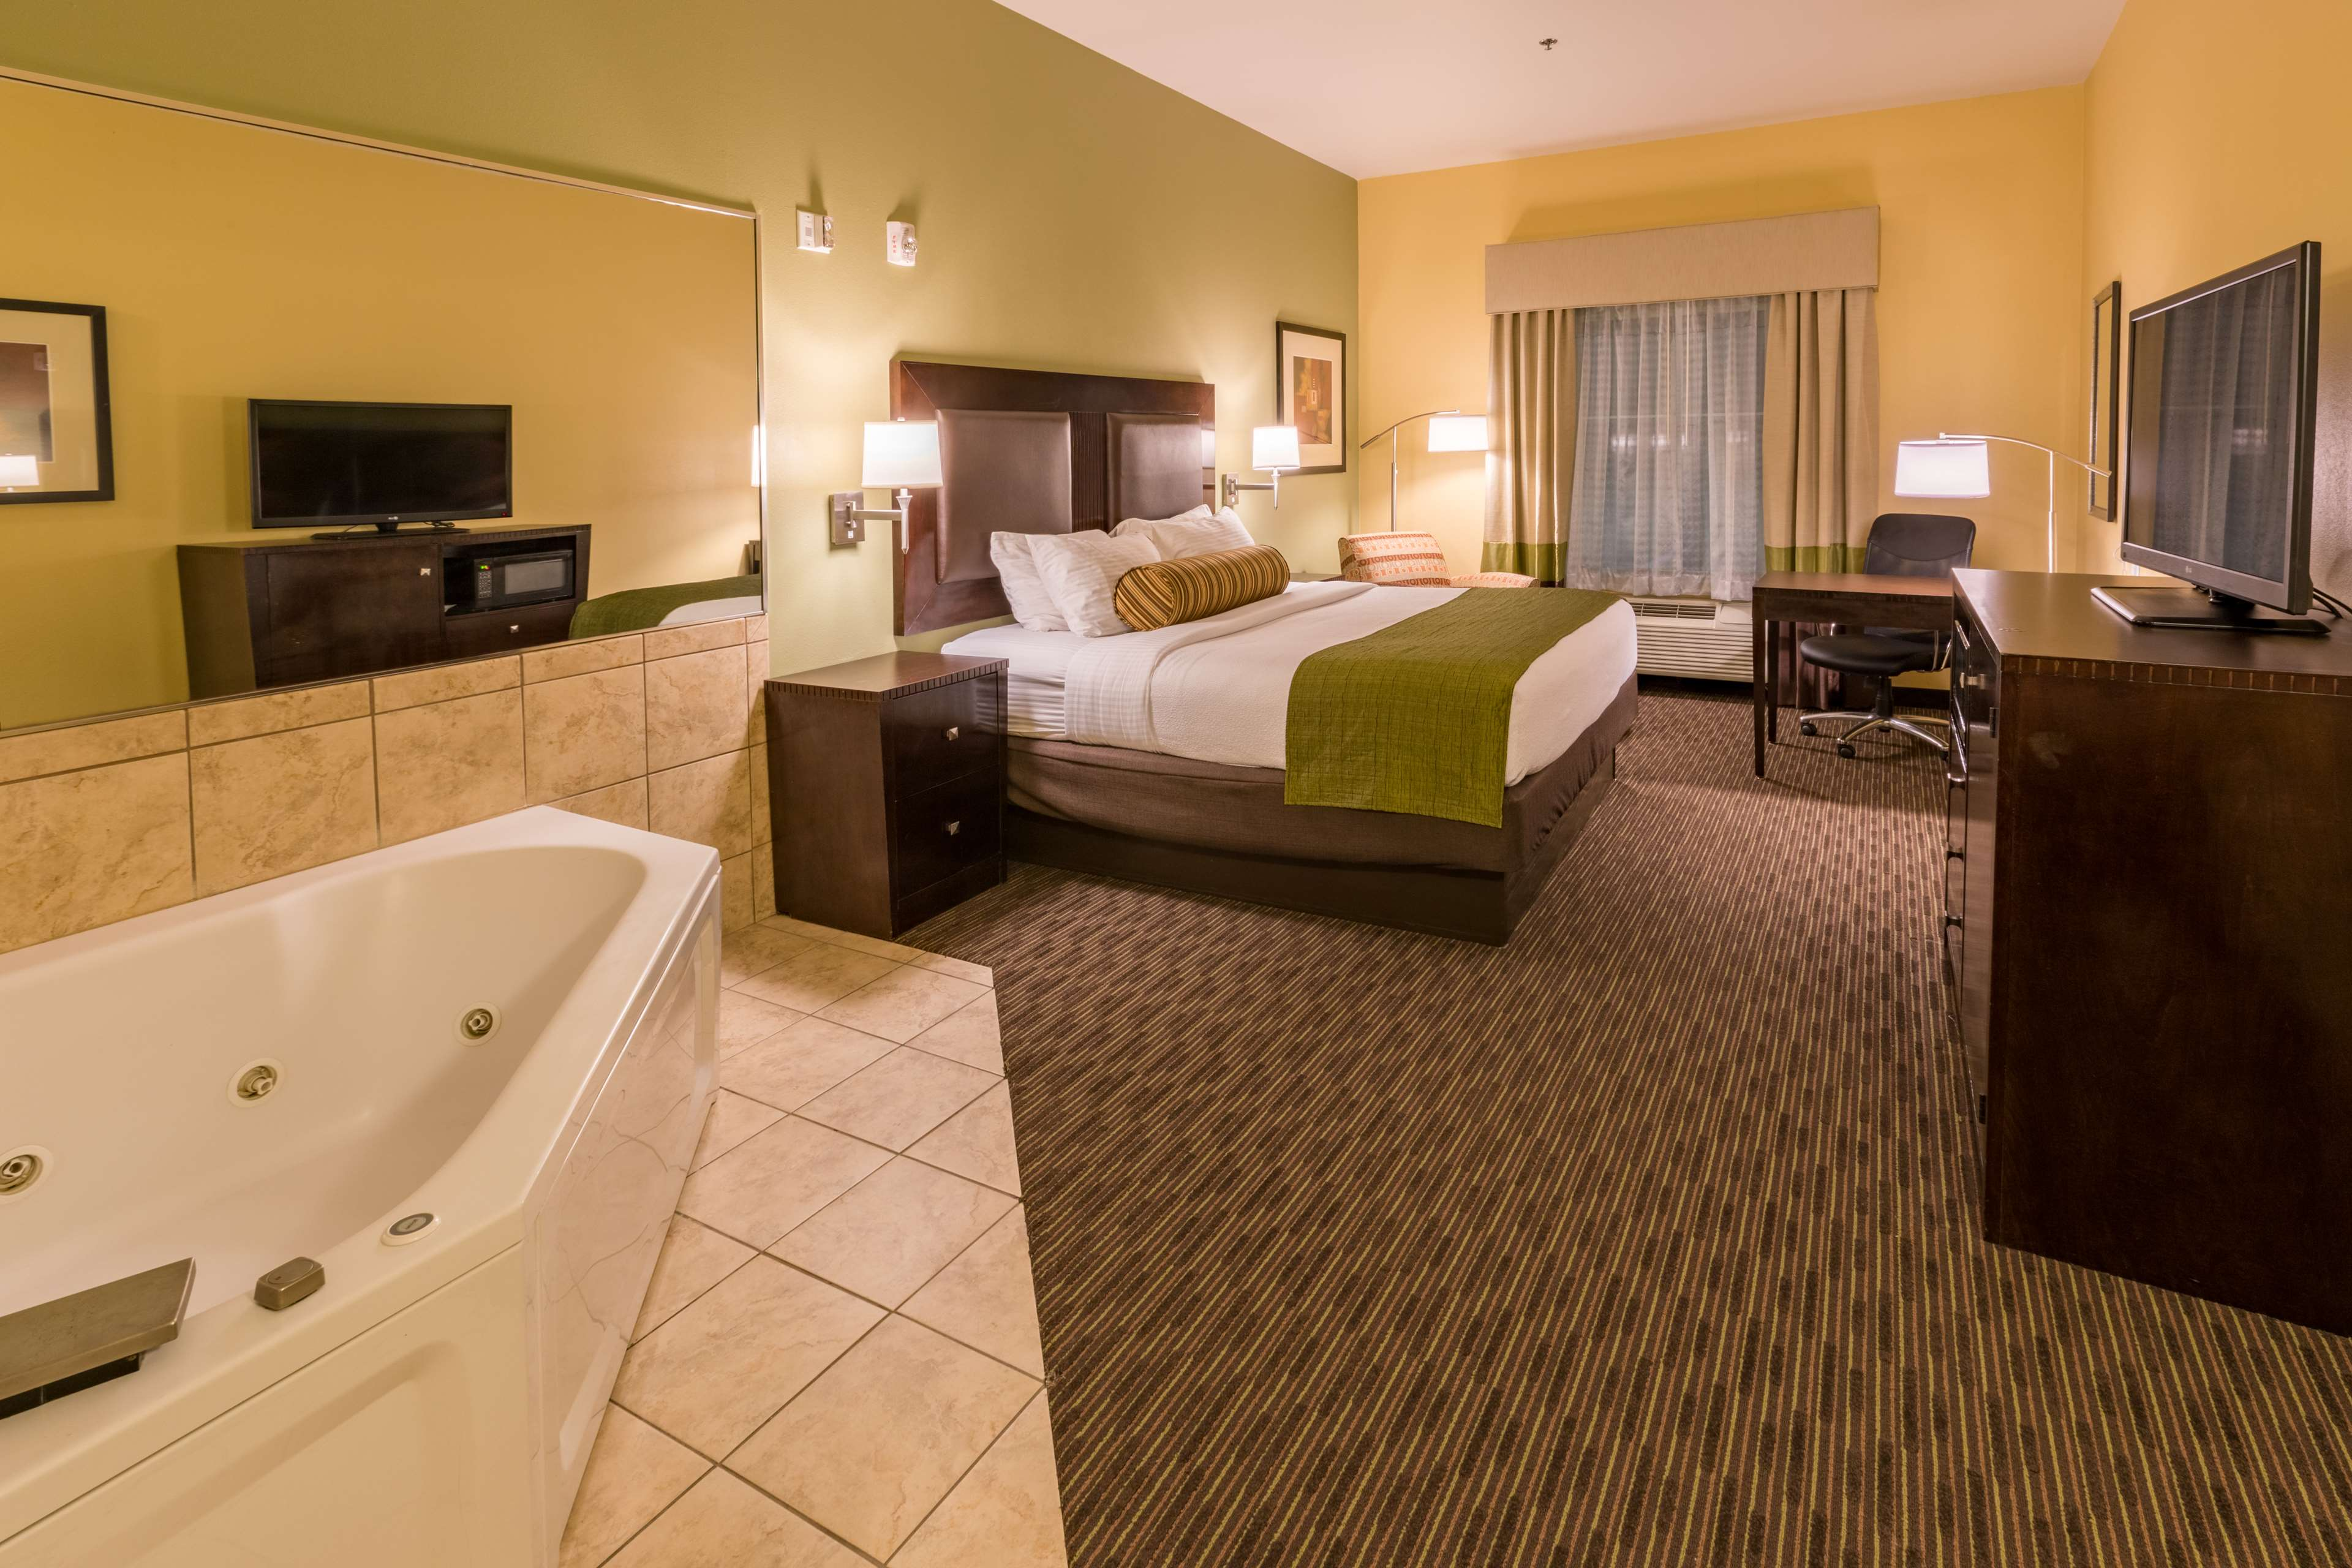 Best Western With Jacuzzi In Room Near Me